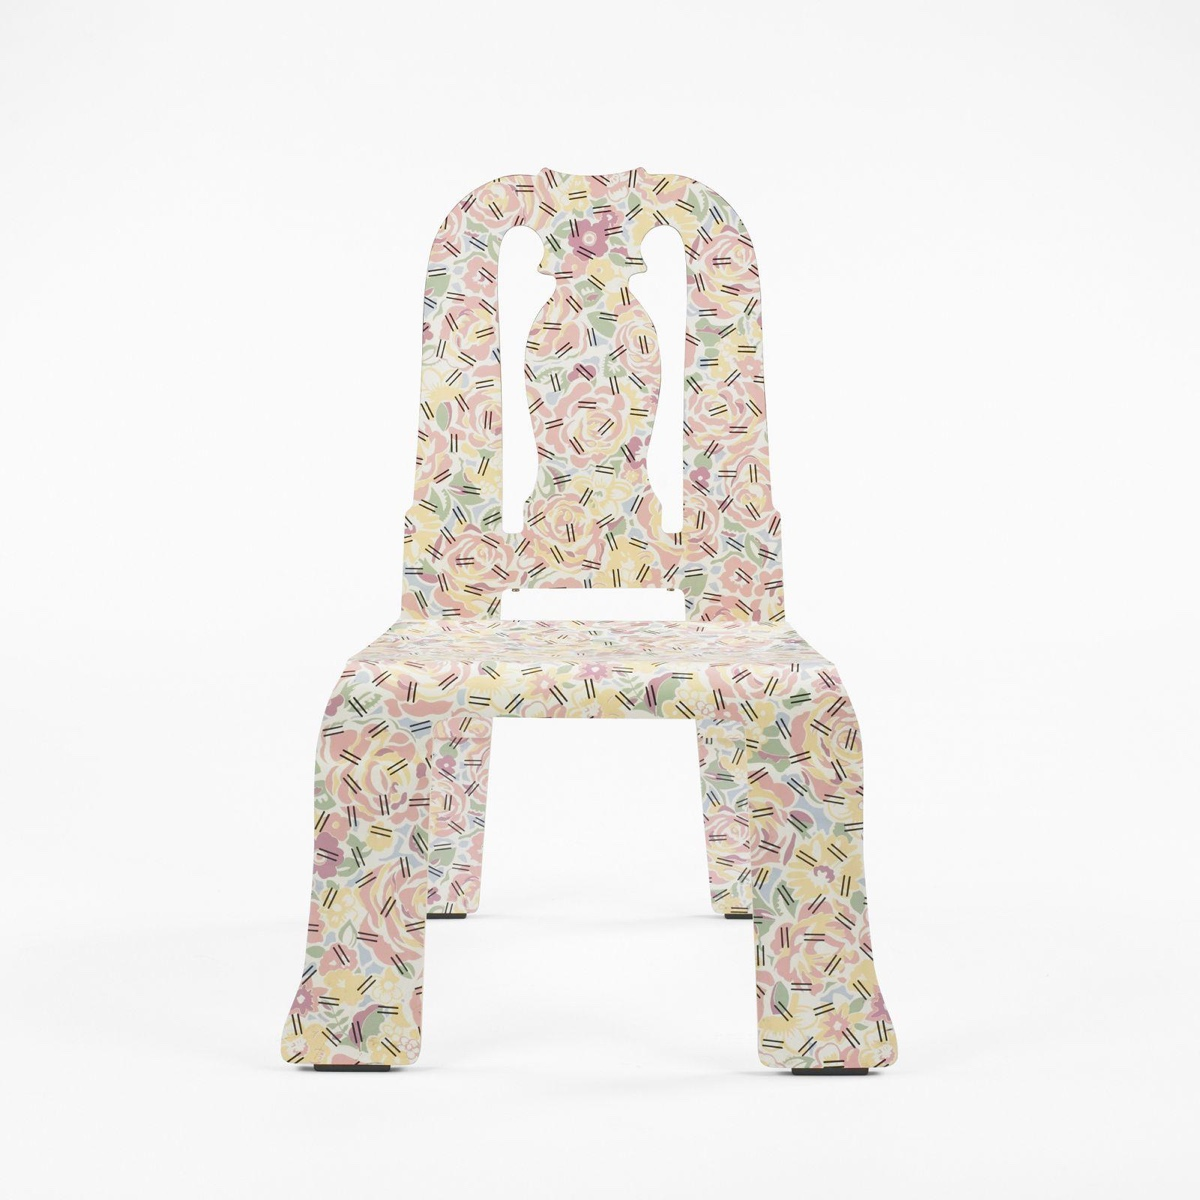 "The Memphis-esque ""Grandmother"" pattern applied to the chair was designed by Denise Scott Brown. Image © iCollector.com."